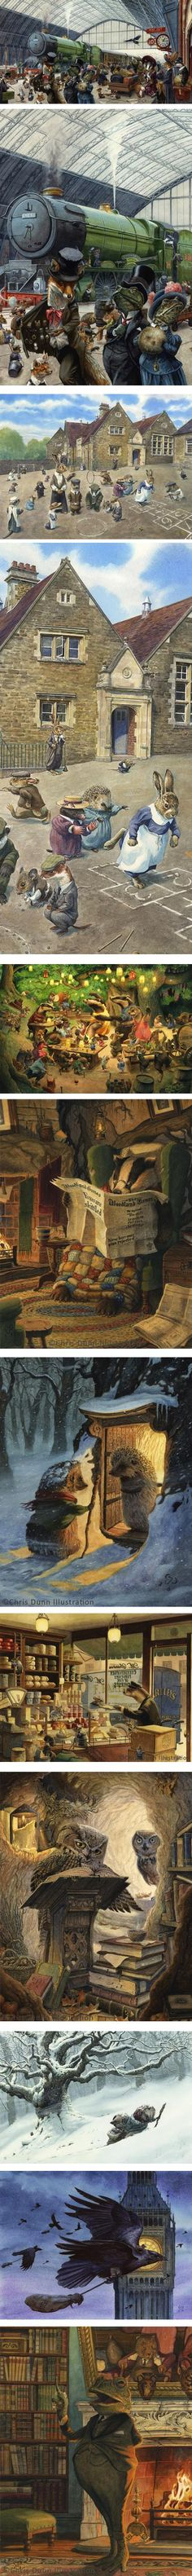 Chris Dunn, illustration, Wind in the Willows